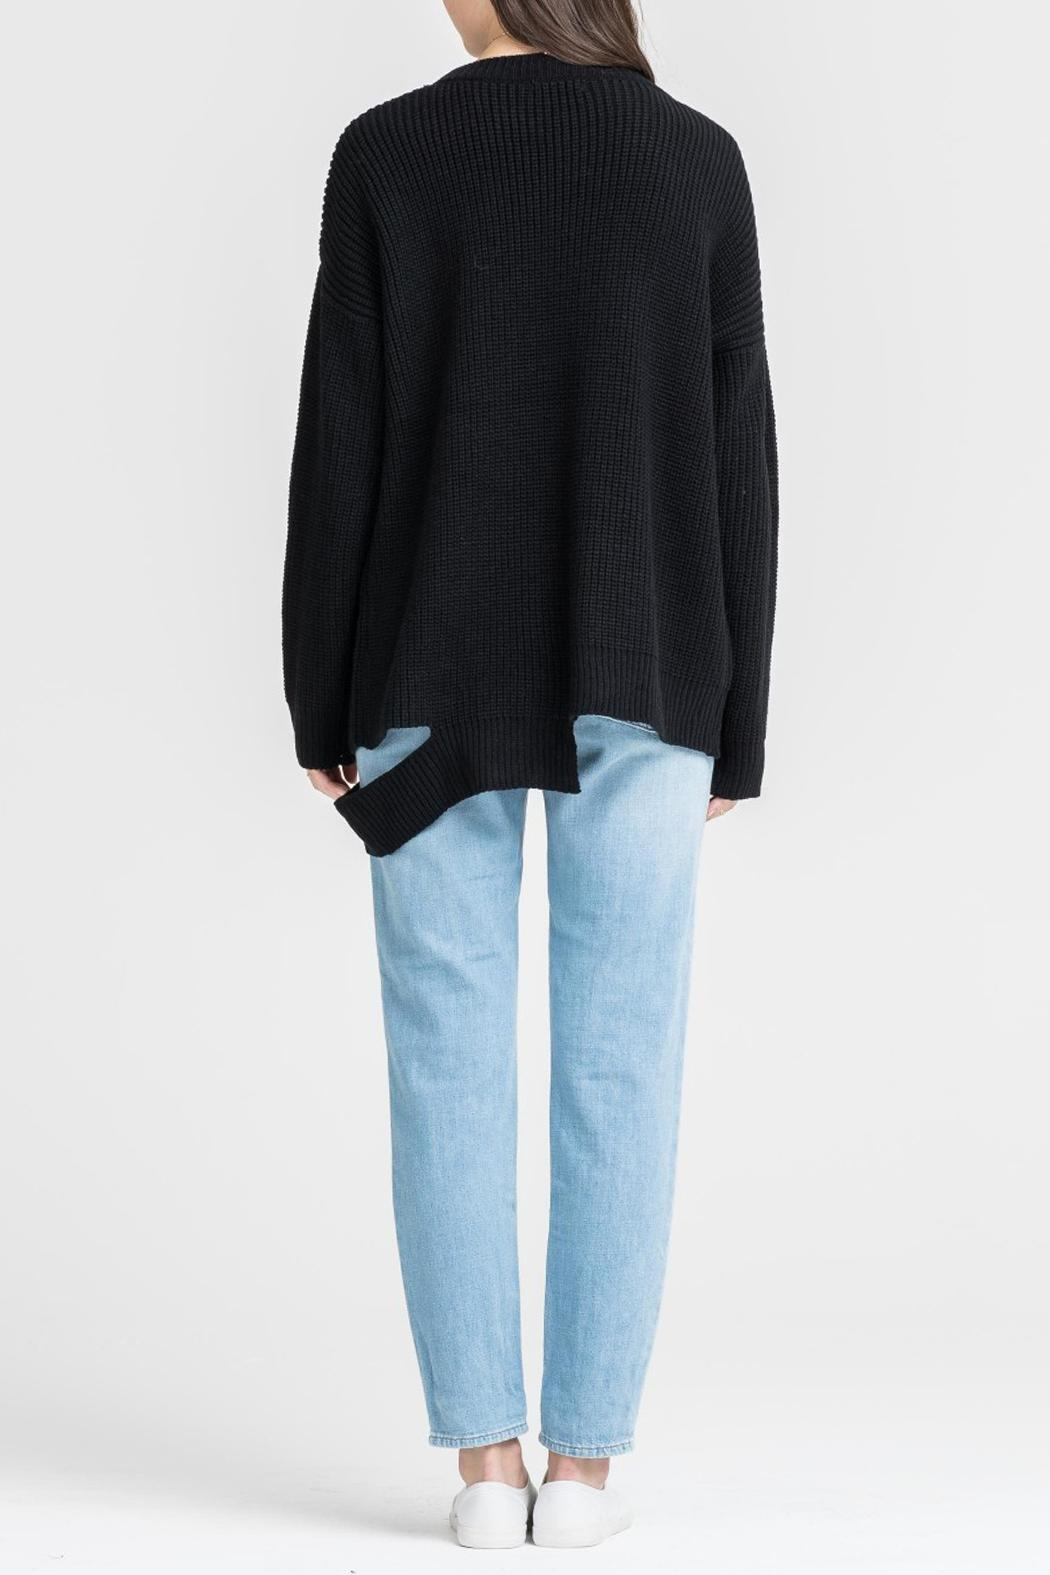 Lush Clothing  Black Slashed Sweater - Side Cropped Image